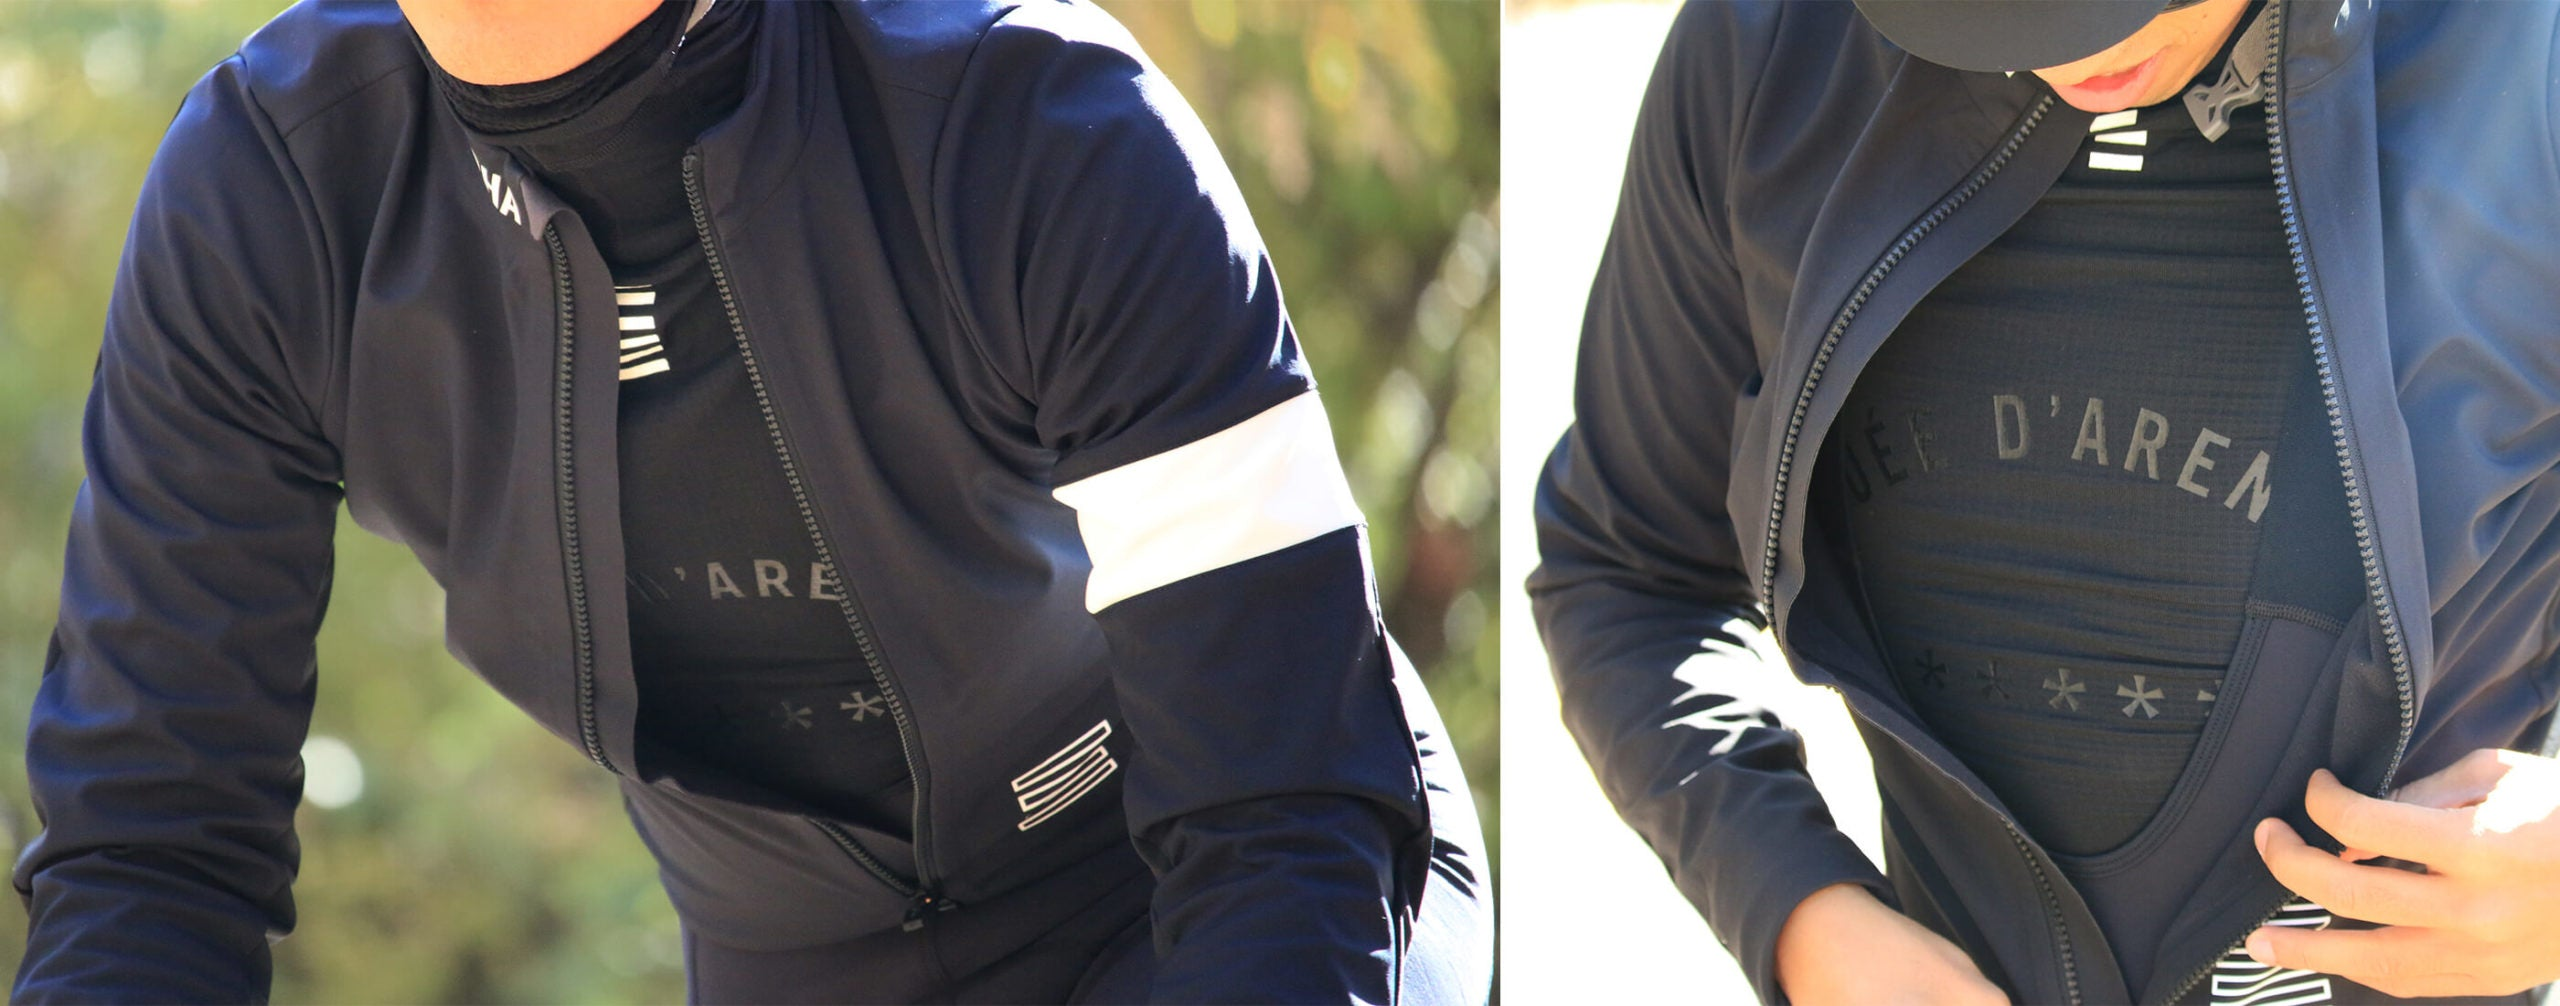 Rapha Pro Team Thermal Long Sleeve Base Layer Review - Contender Bicycles